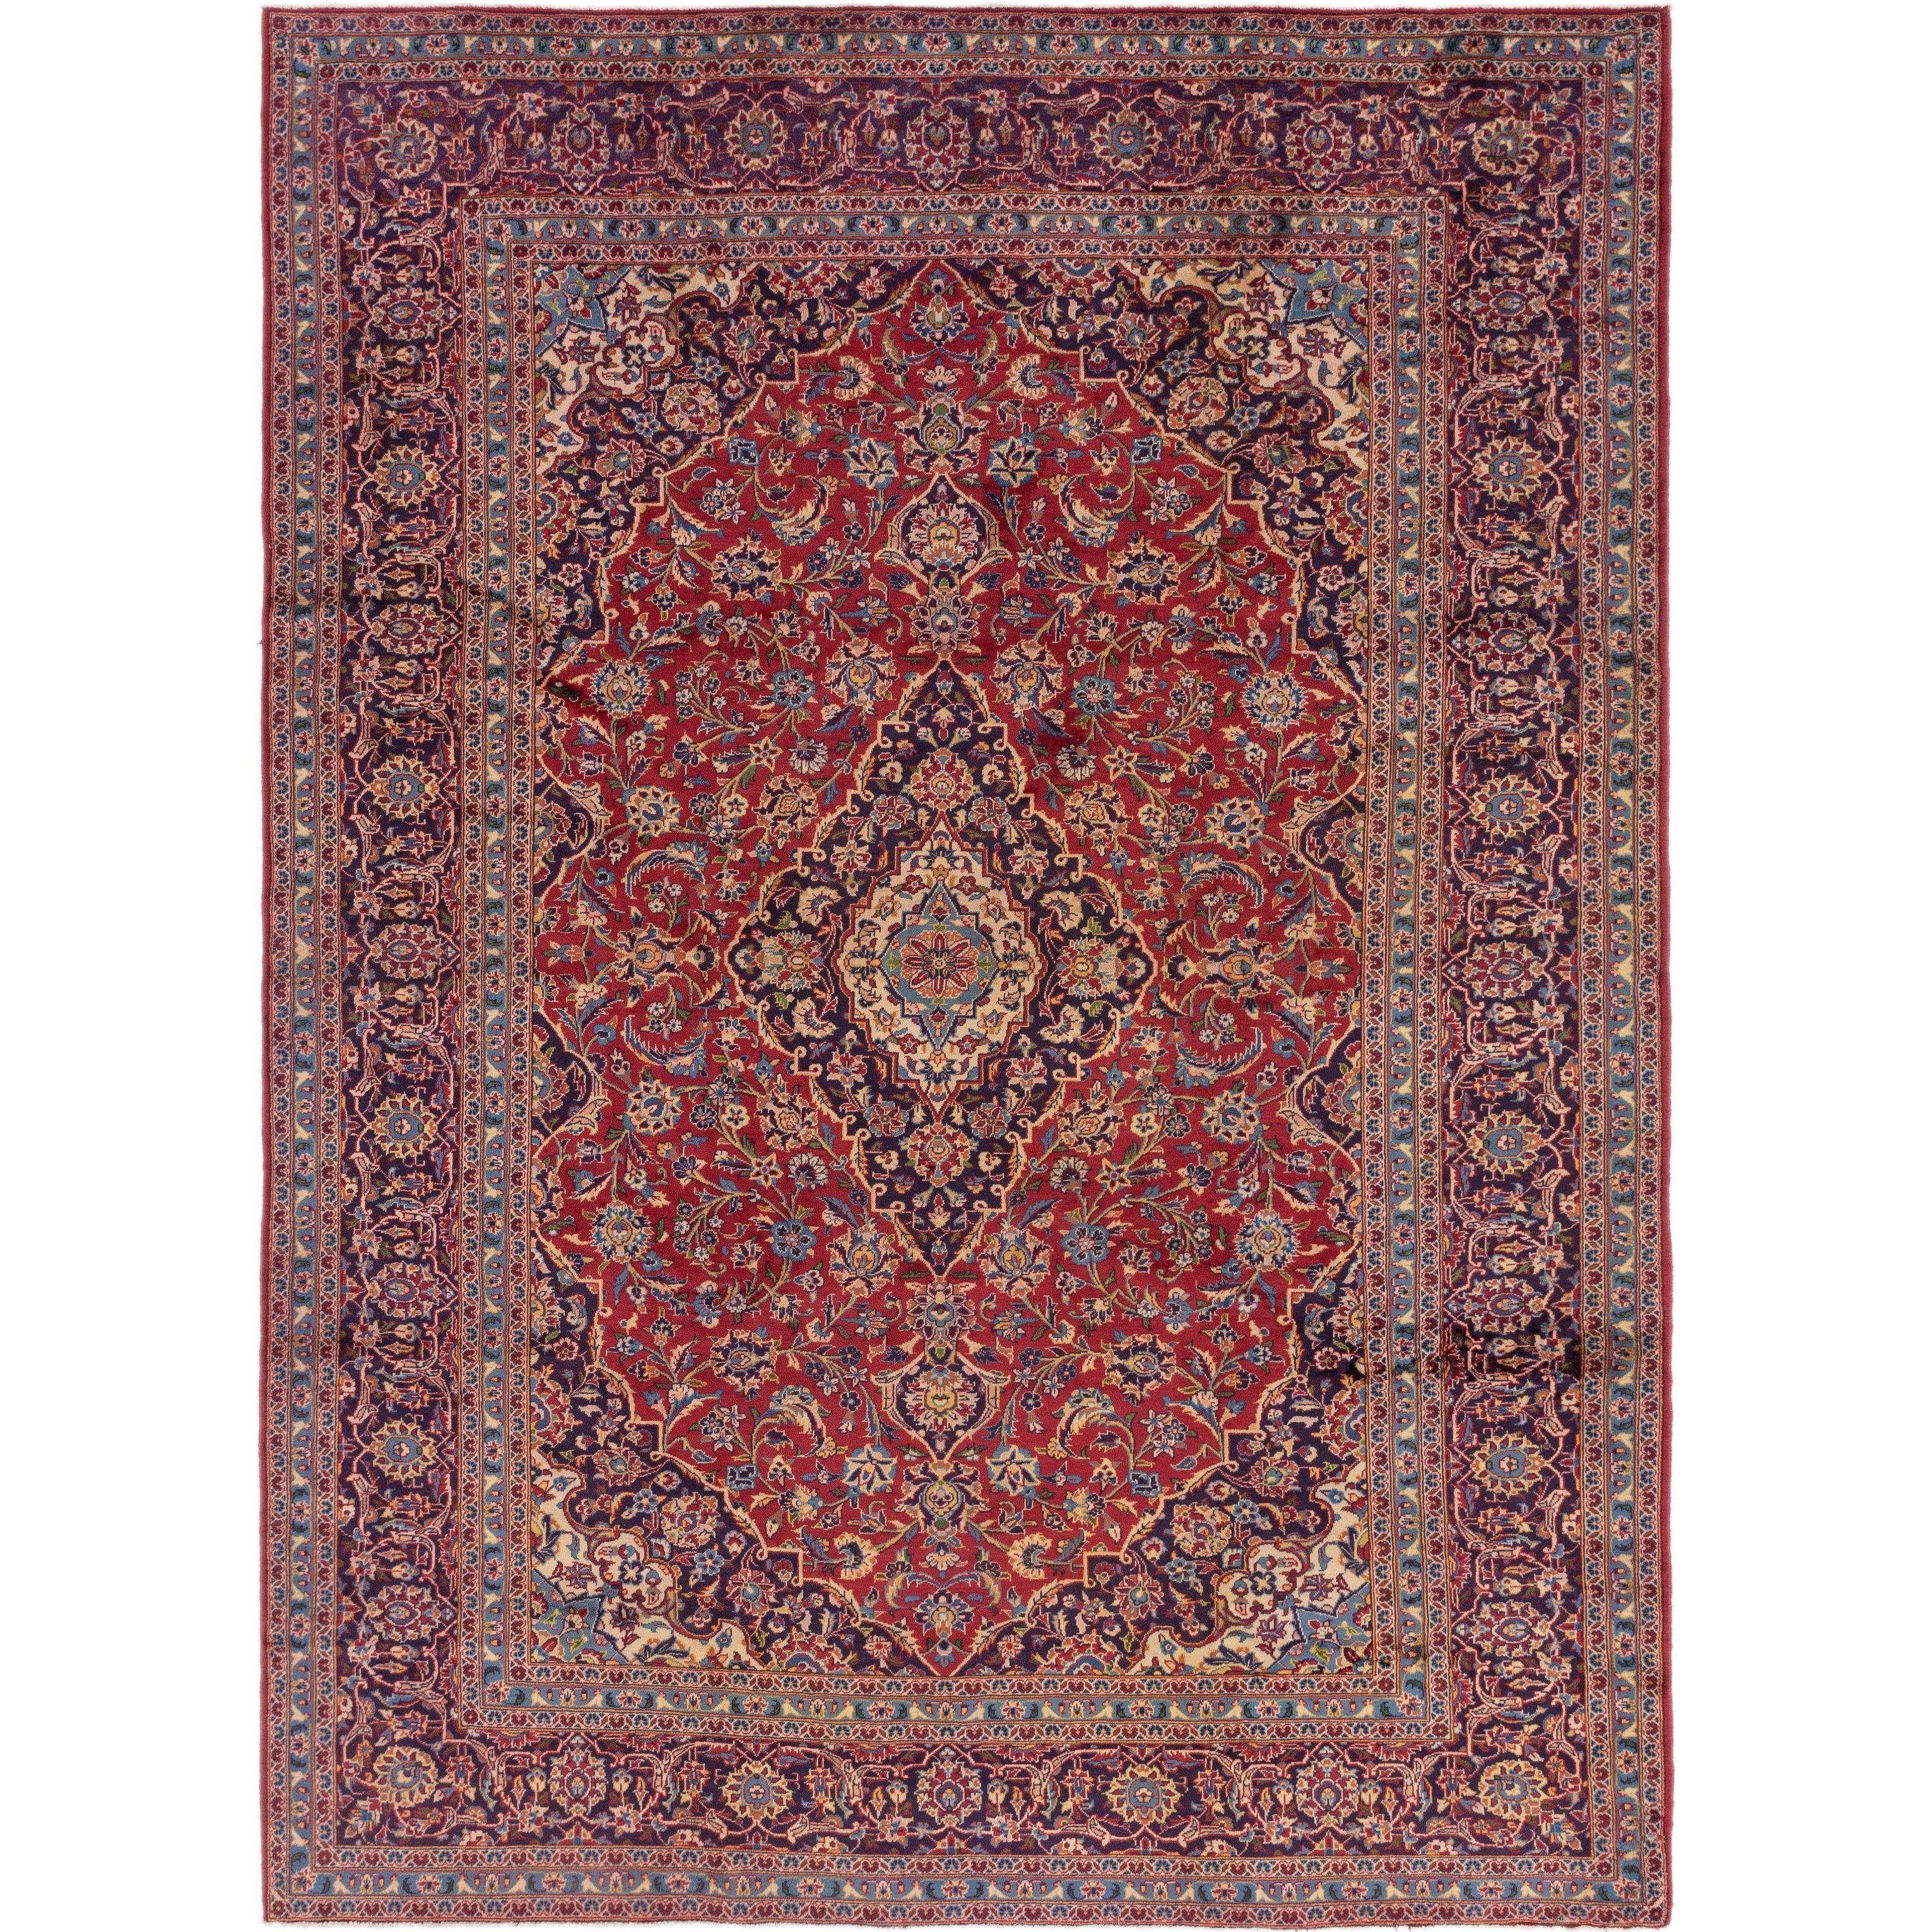 Hand Knotted Kashan Wool Area Rug - 9 3 x 12 7 (Red - 9 3 x 12 7)